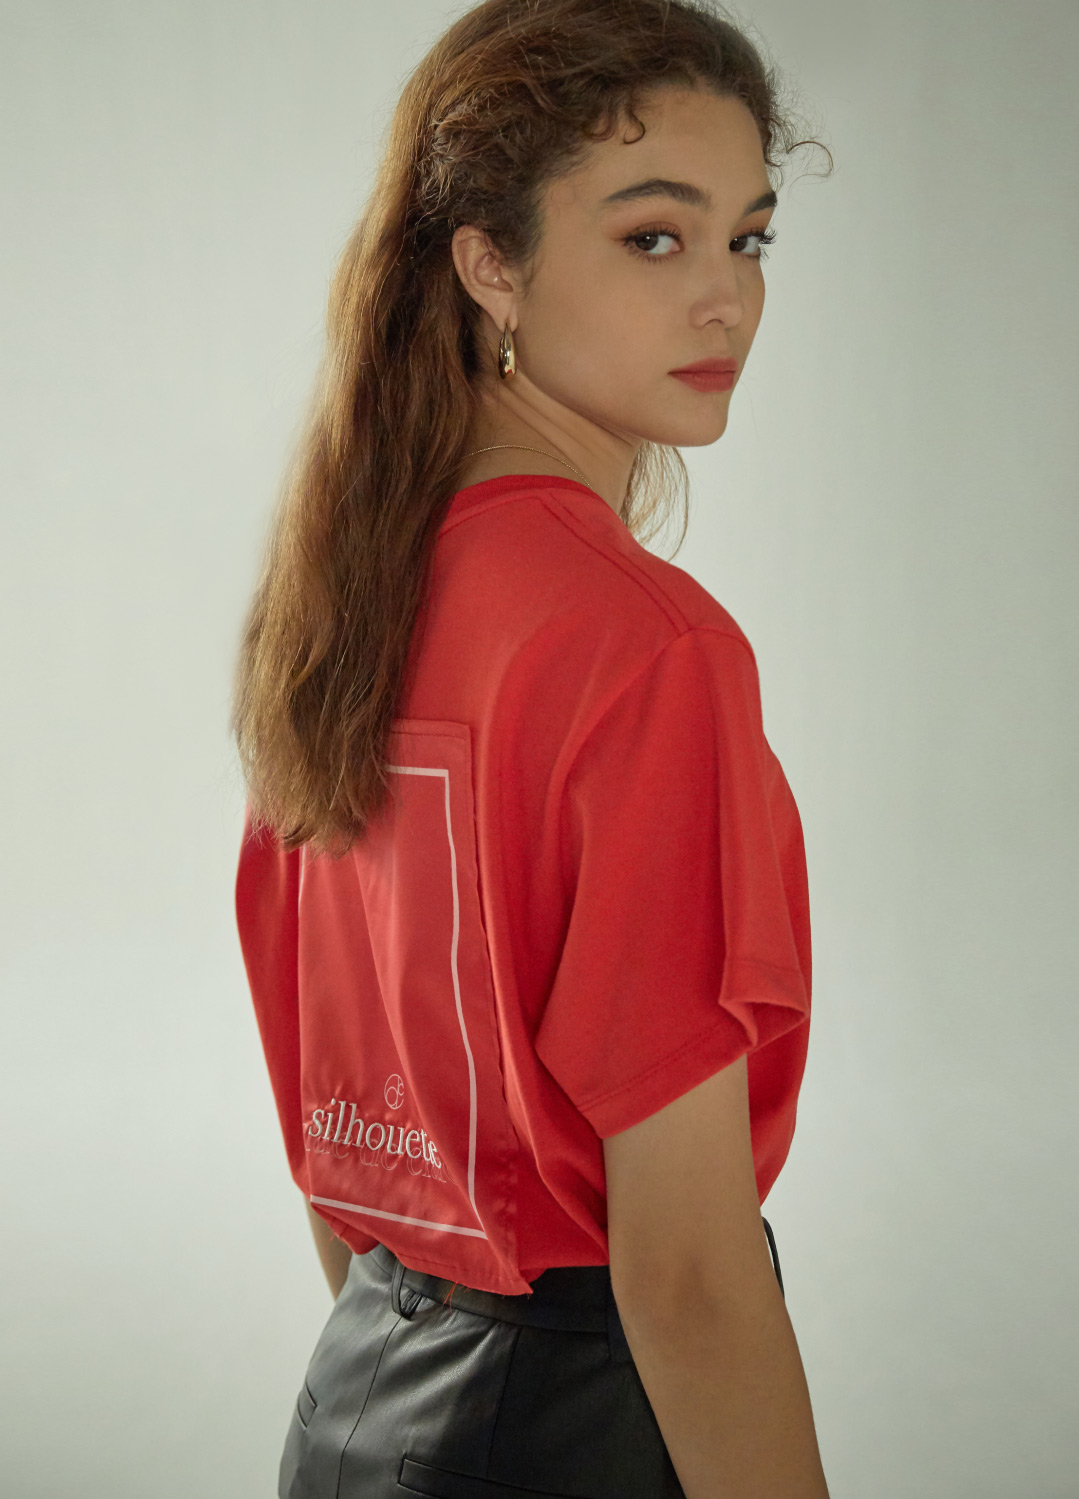 silhouette t-shirt Red